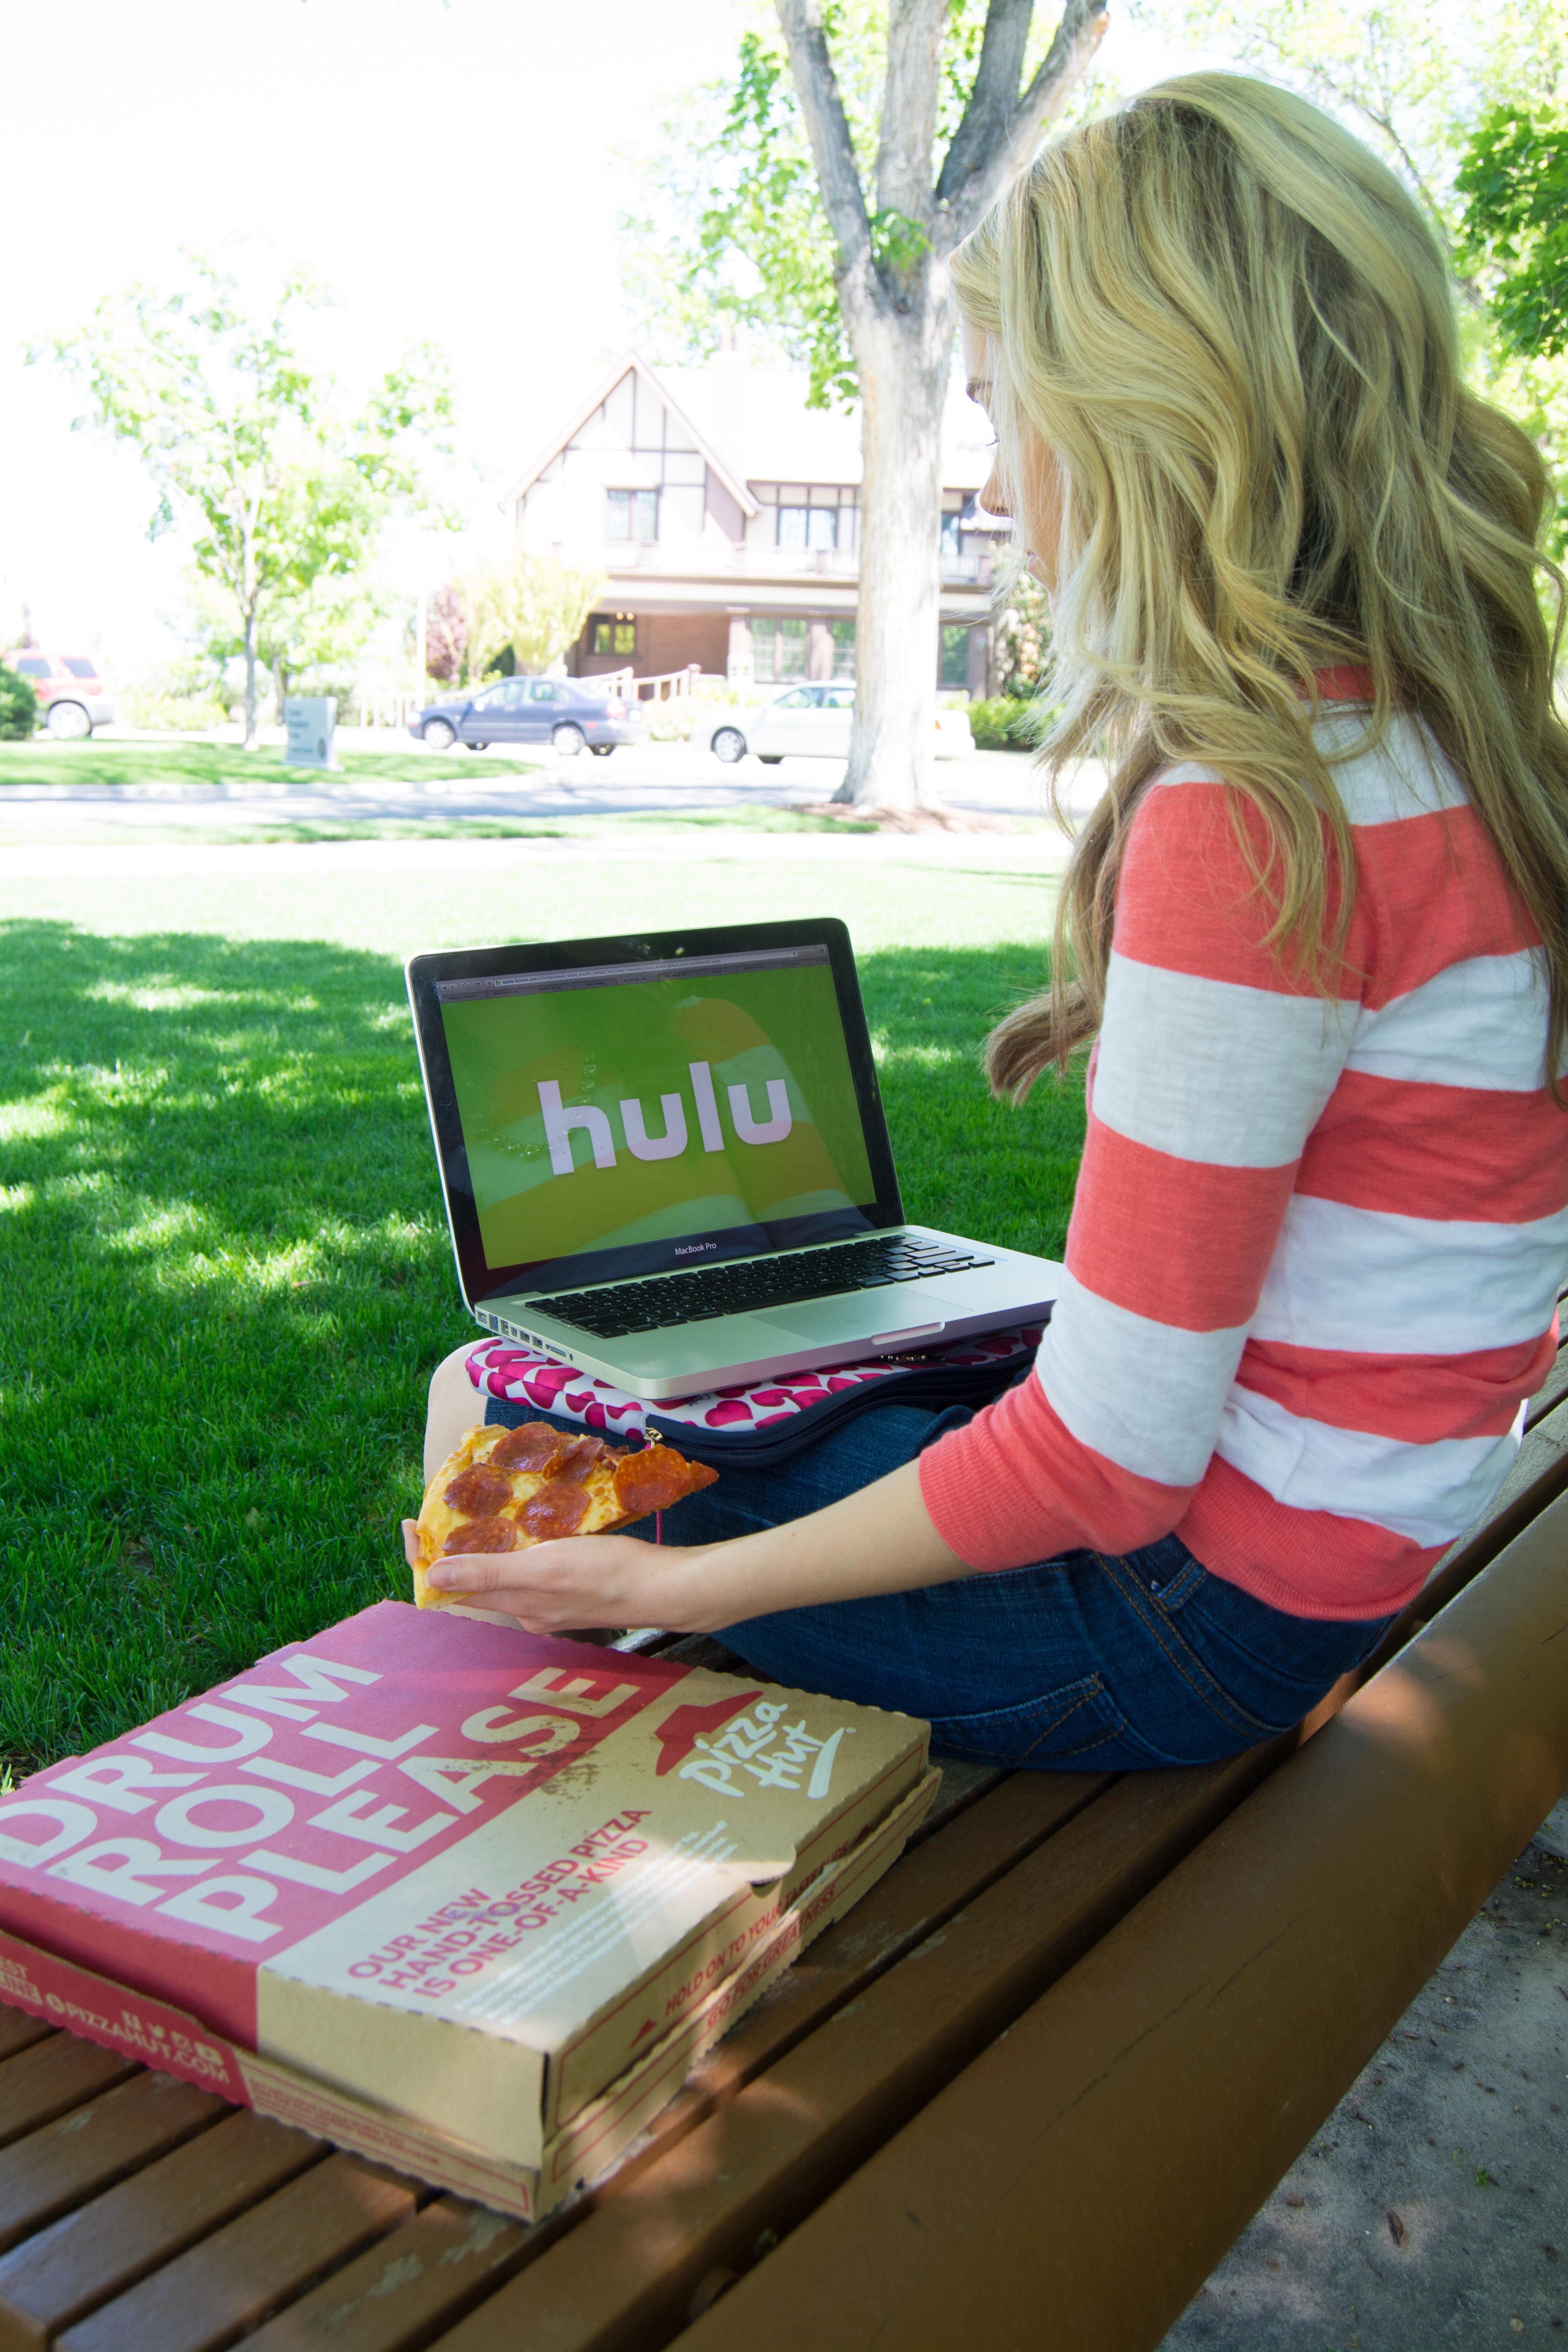 Hulu users will soon be able to order Pizza Hut without ever leaving their streaming page. (Photo by: Natalie Stoker)